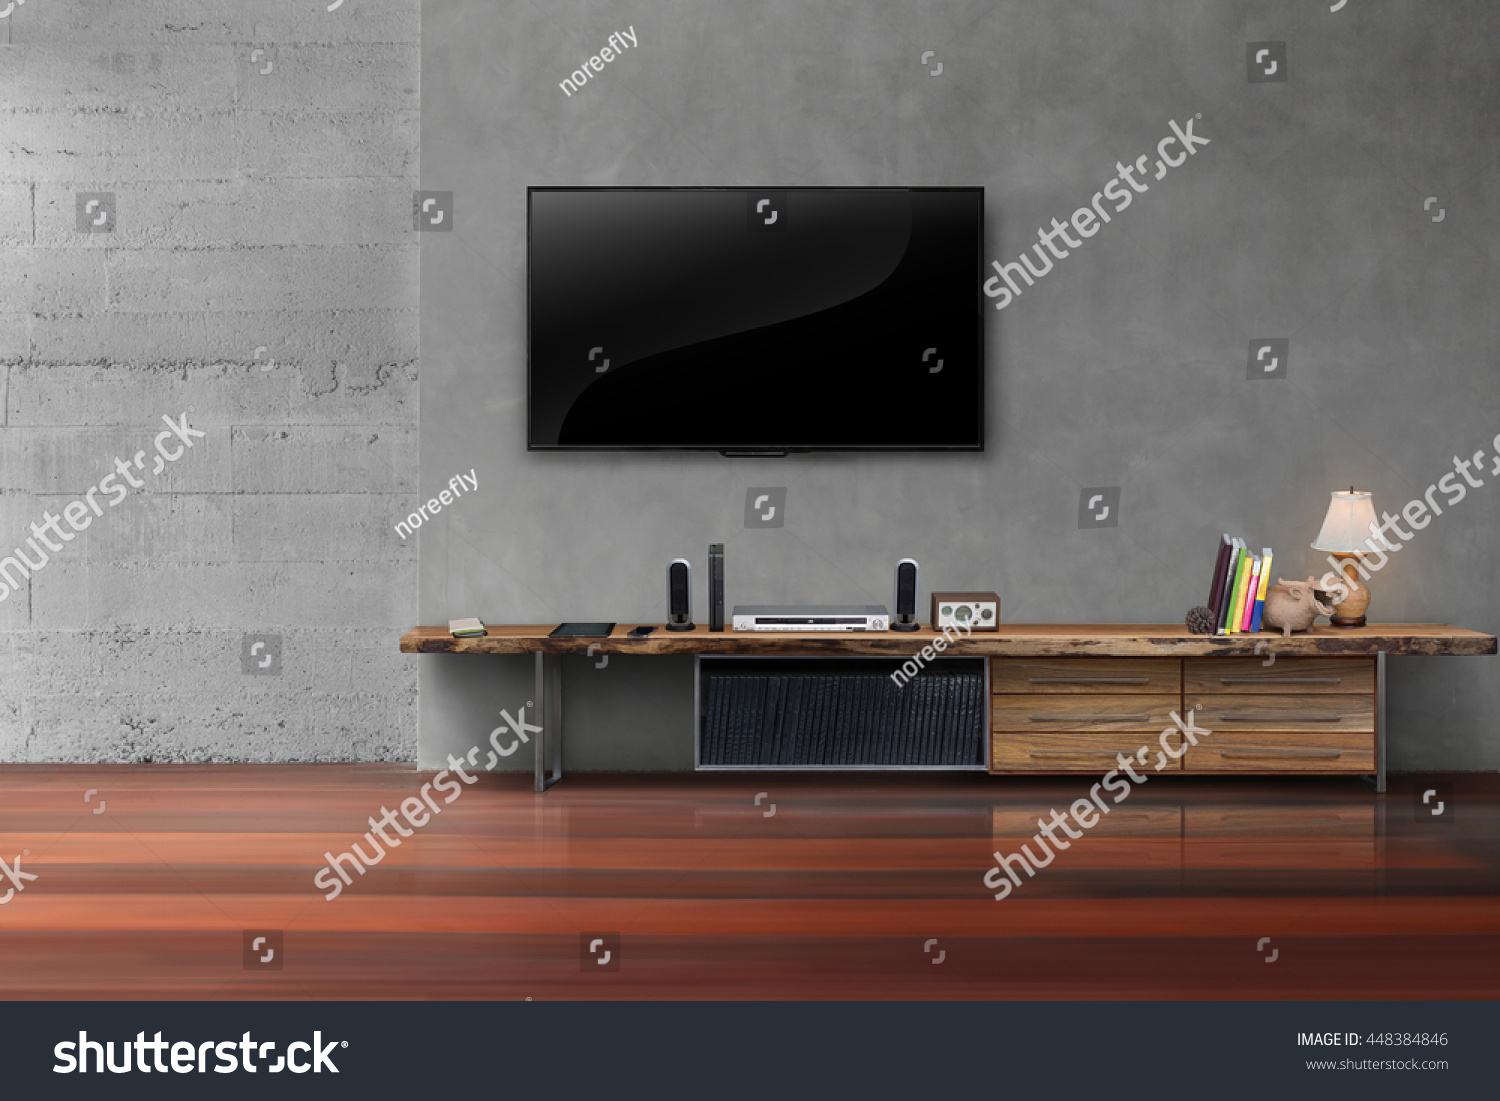 living room led tv on concrete wall with wooden table media furniture modern loft style: furniture living room wall